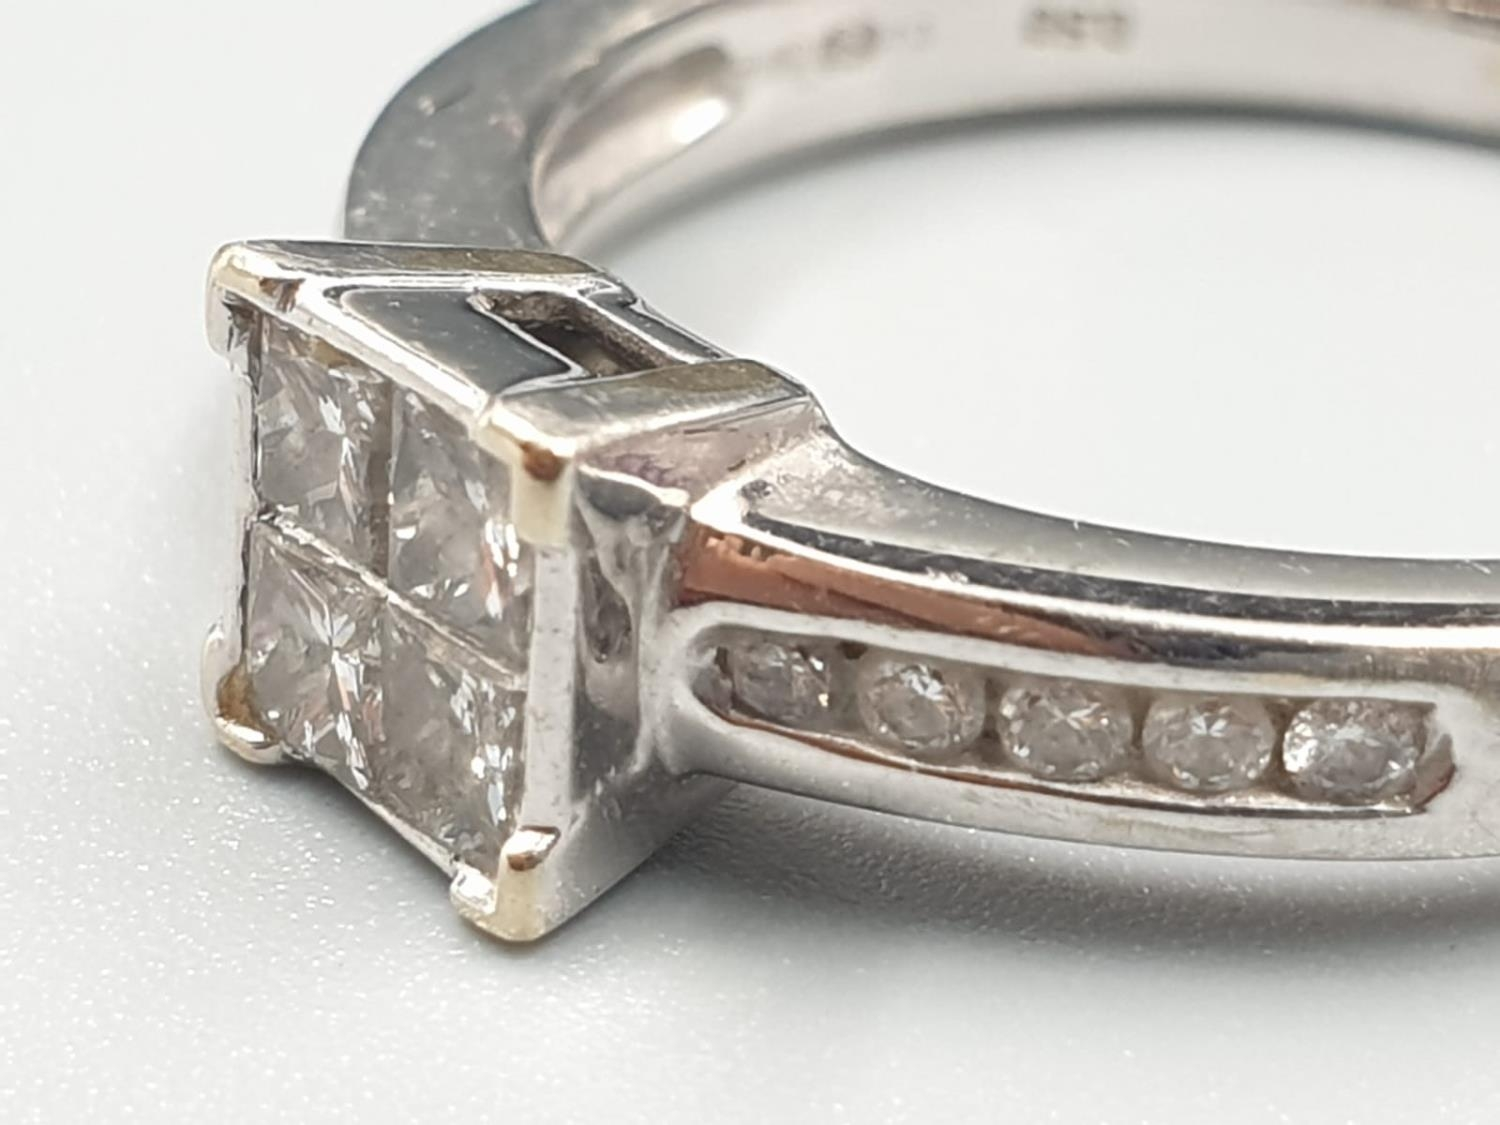 18K WHITE GOLD DIAMOND CLUSTER RING APPROX 0.45CT DIAMONDS WEIGHT 4.5G SIZE Q - Image 2 of 6